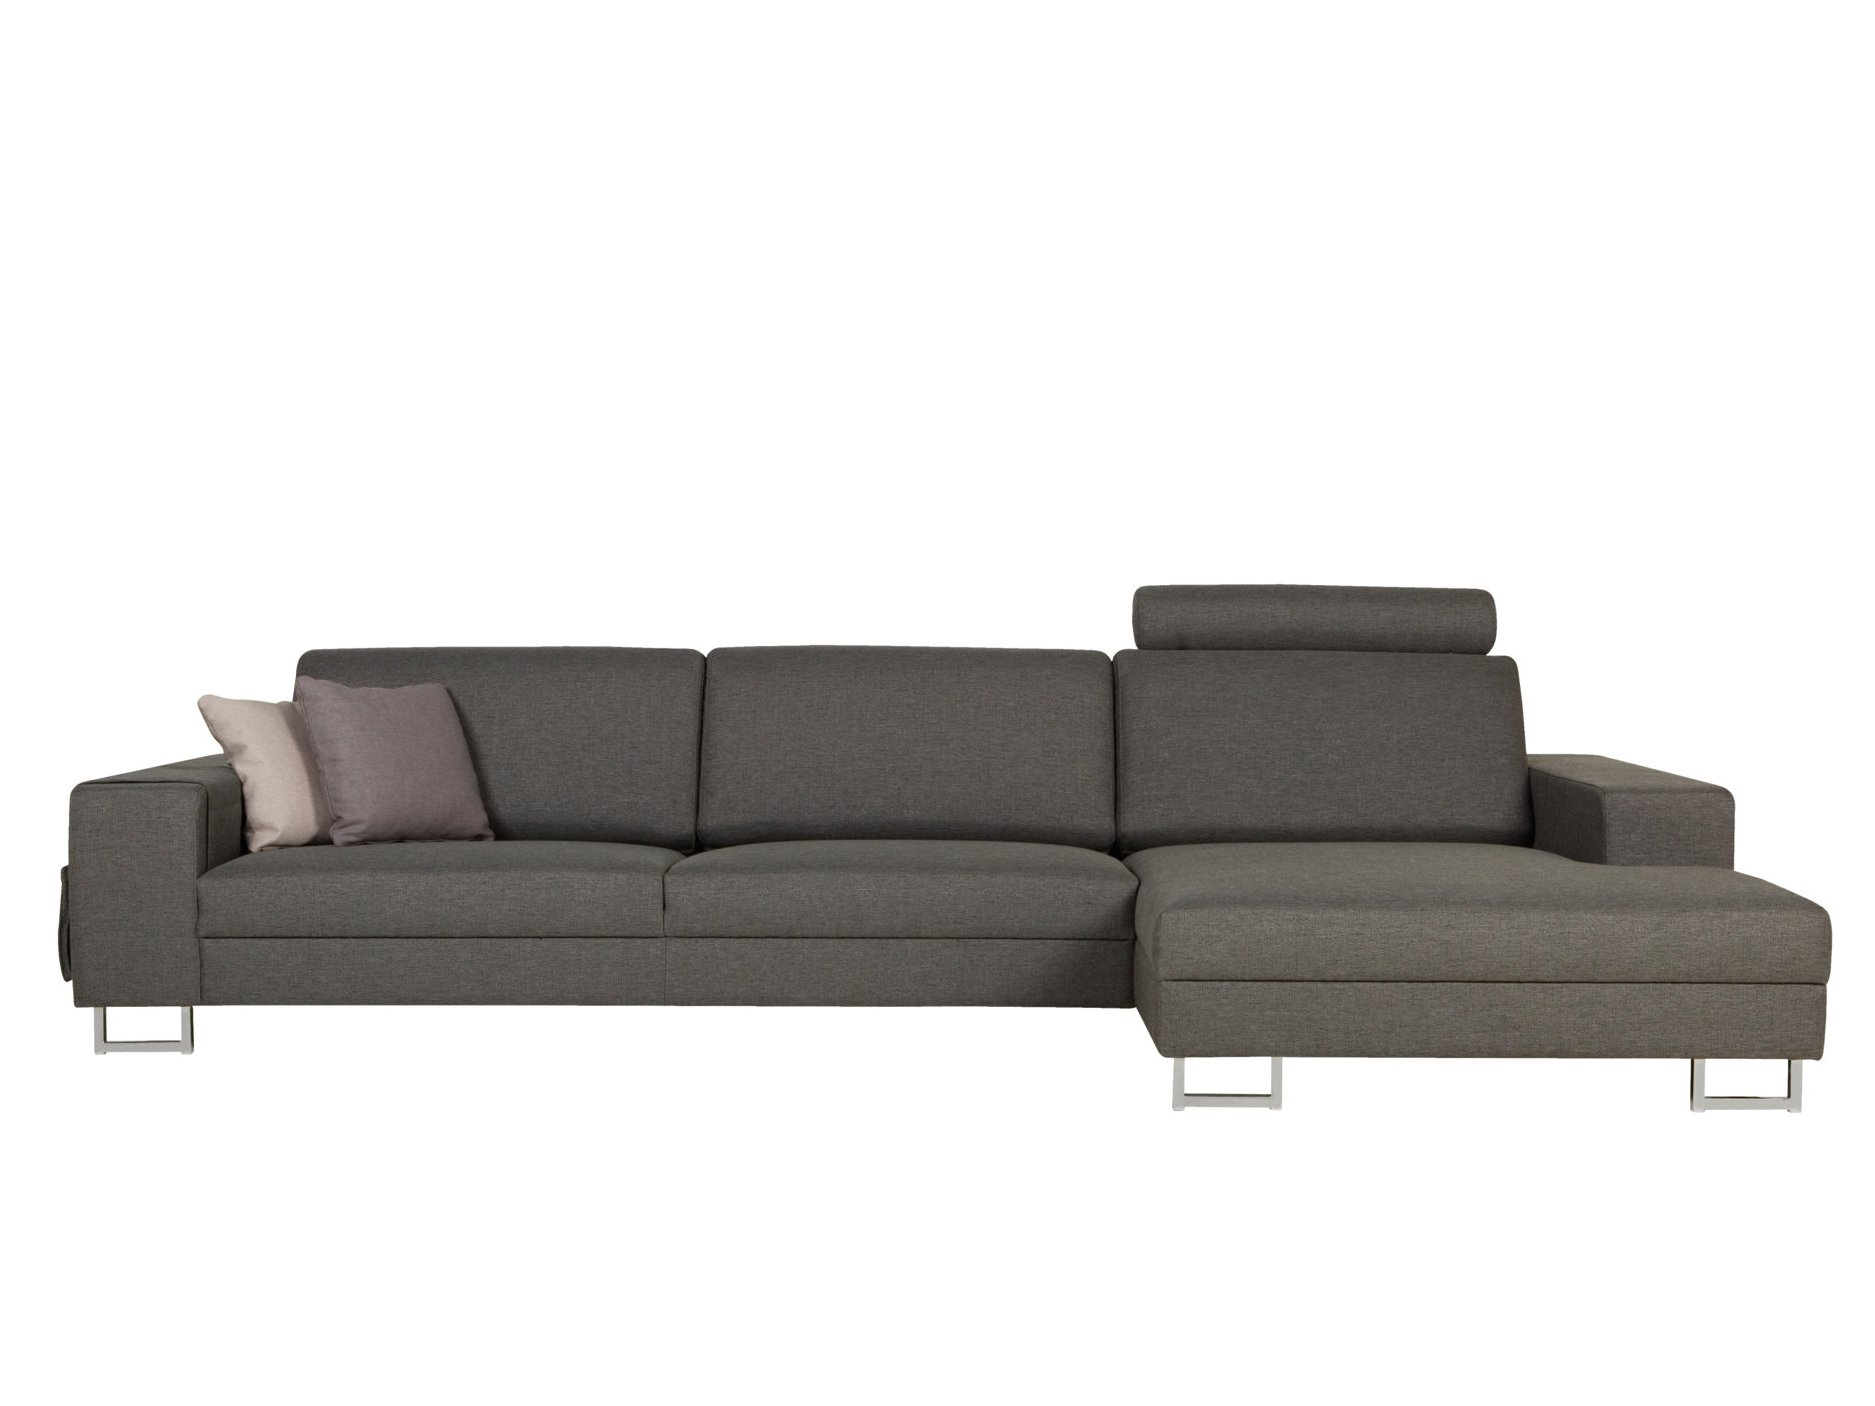 Quattro sofa with chaise longue quattro collection by sits for Chaise longue style sofa